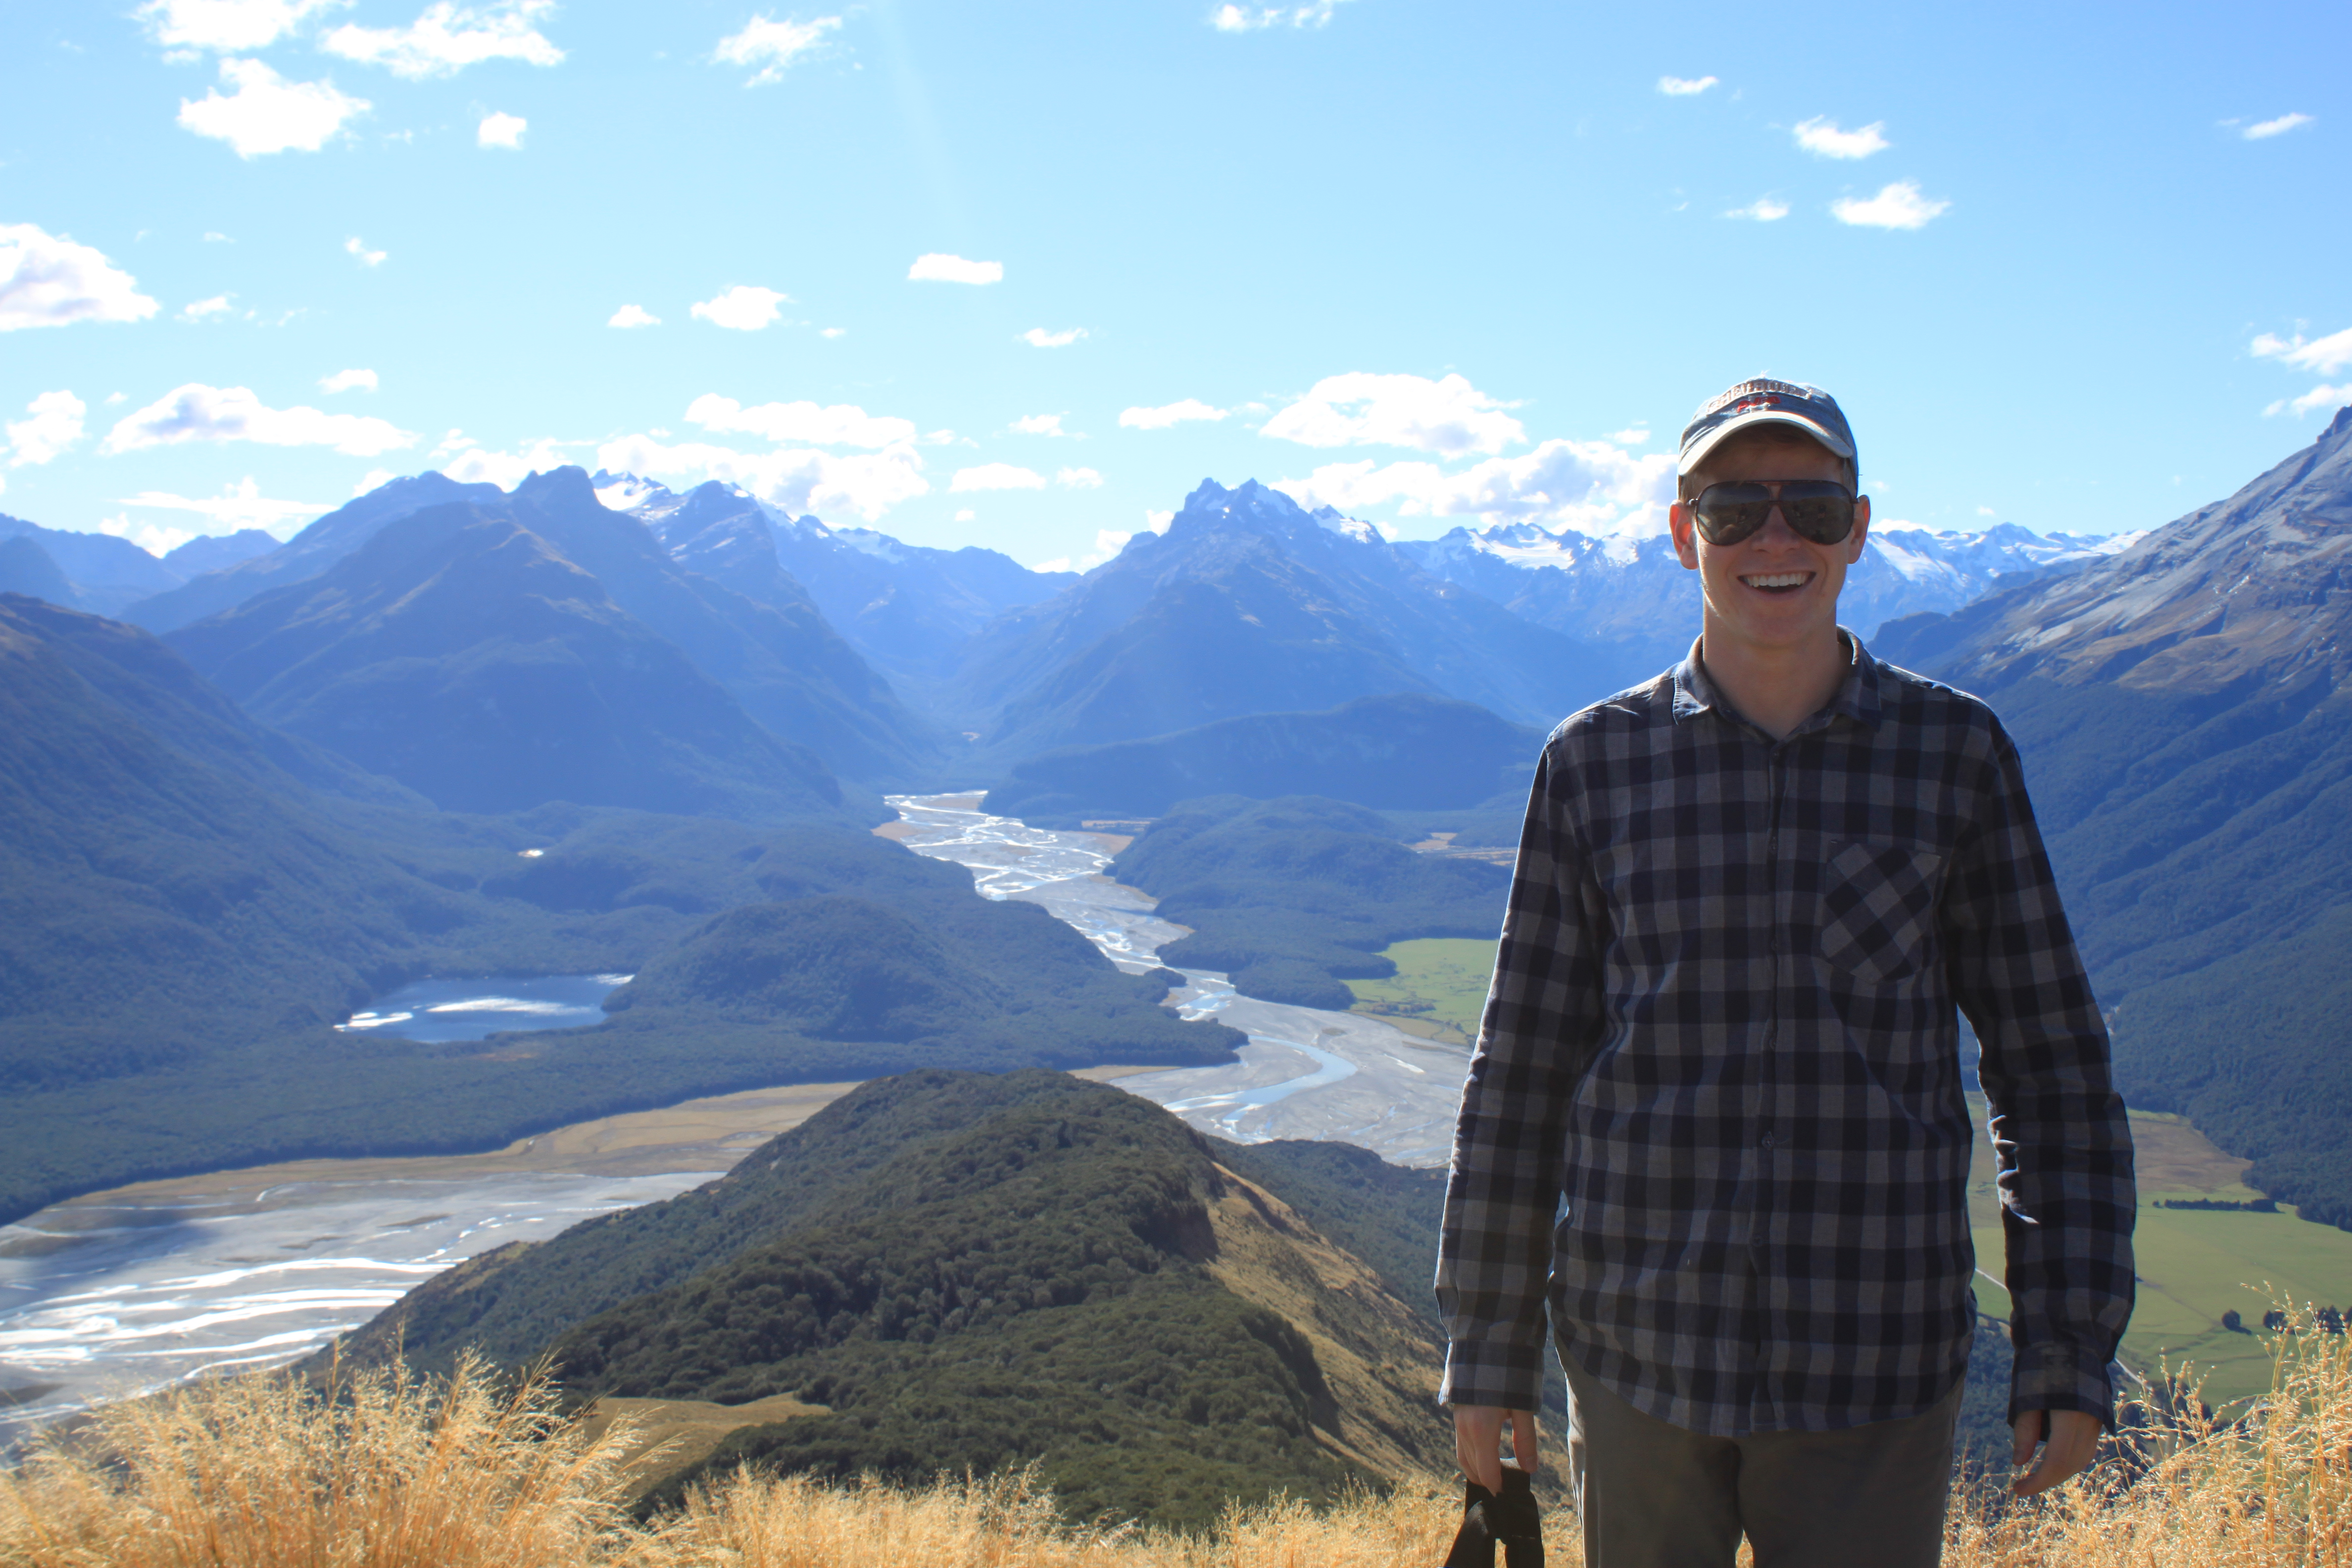 student posed in front of mountain range